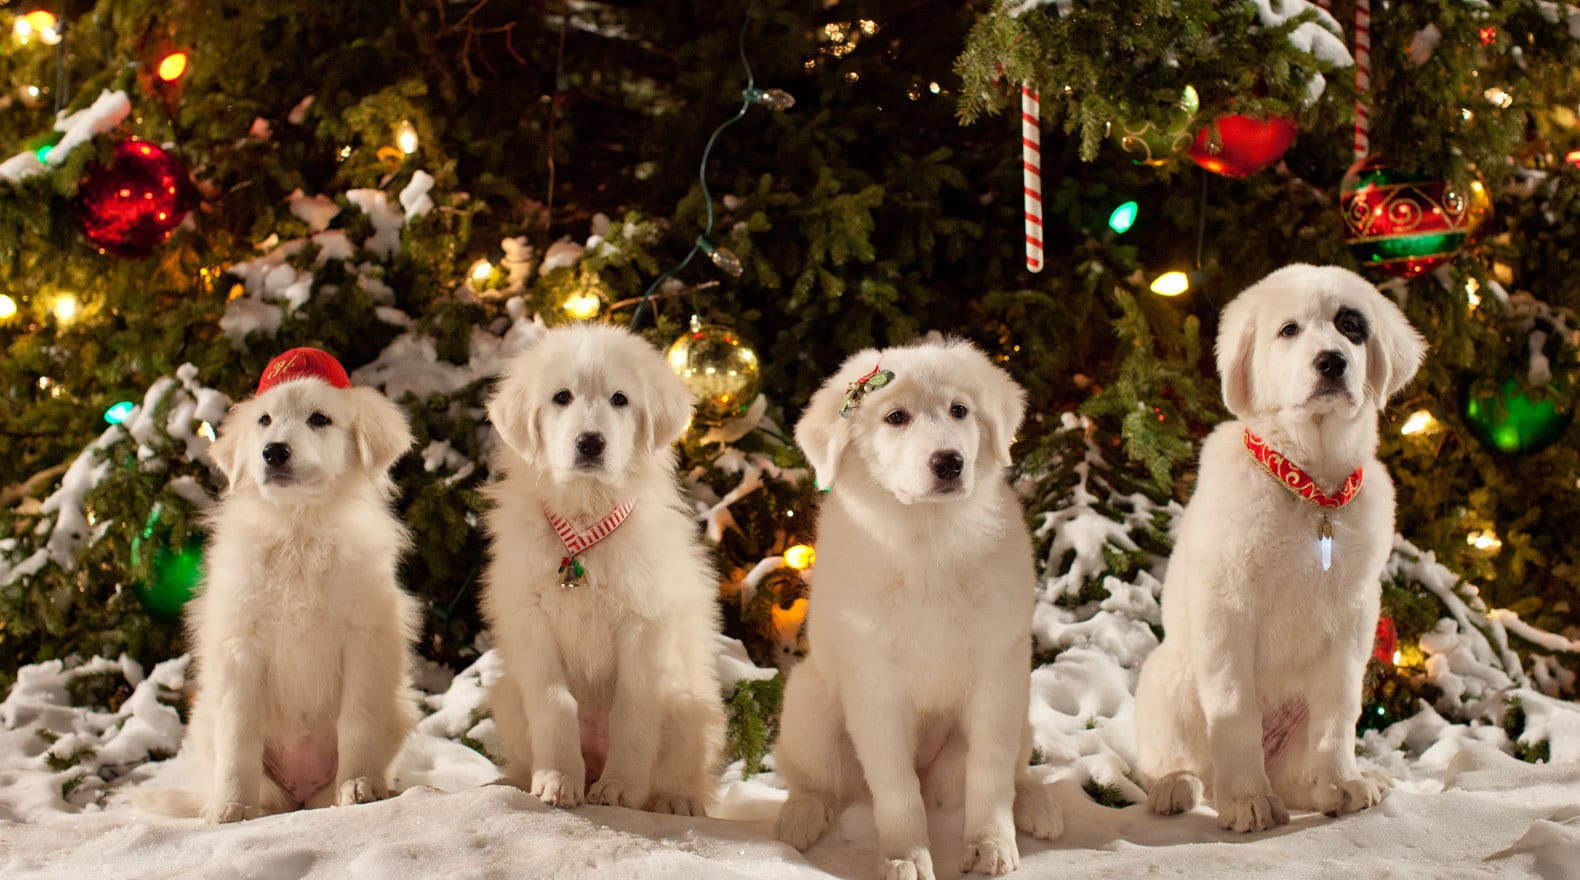 Hope, Jingle, Charity and Noble (puppies) sitting in front of a Christmas tree